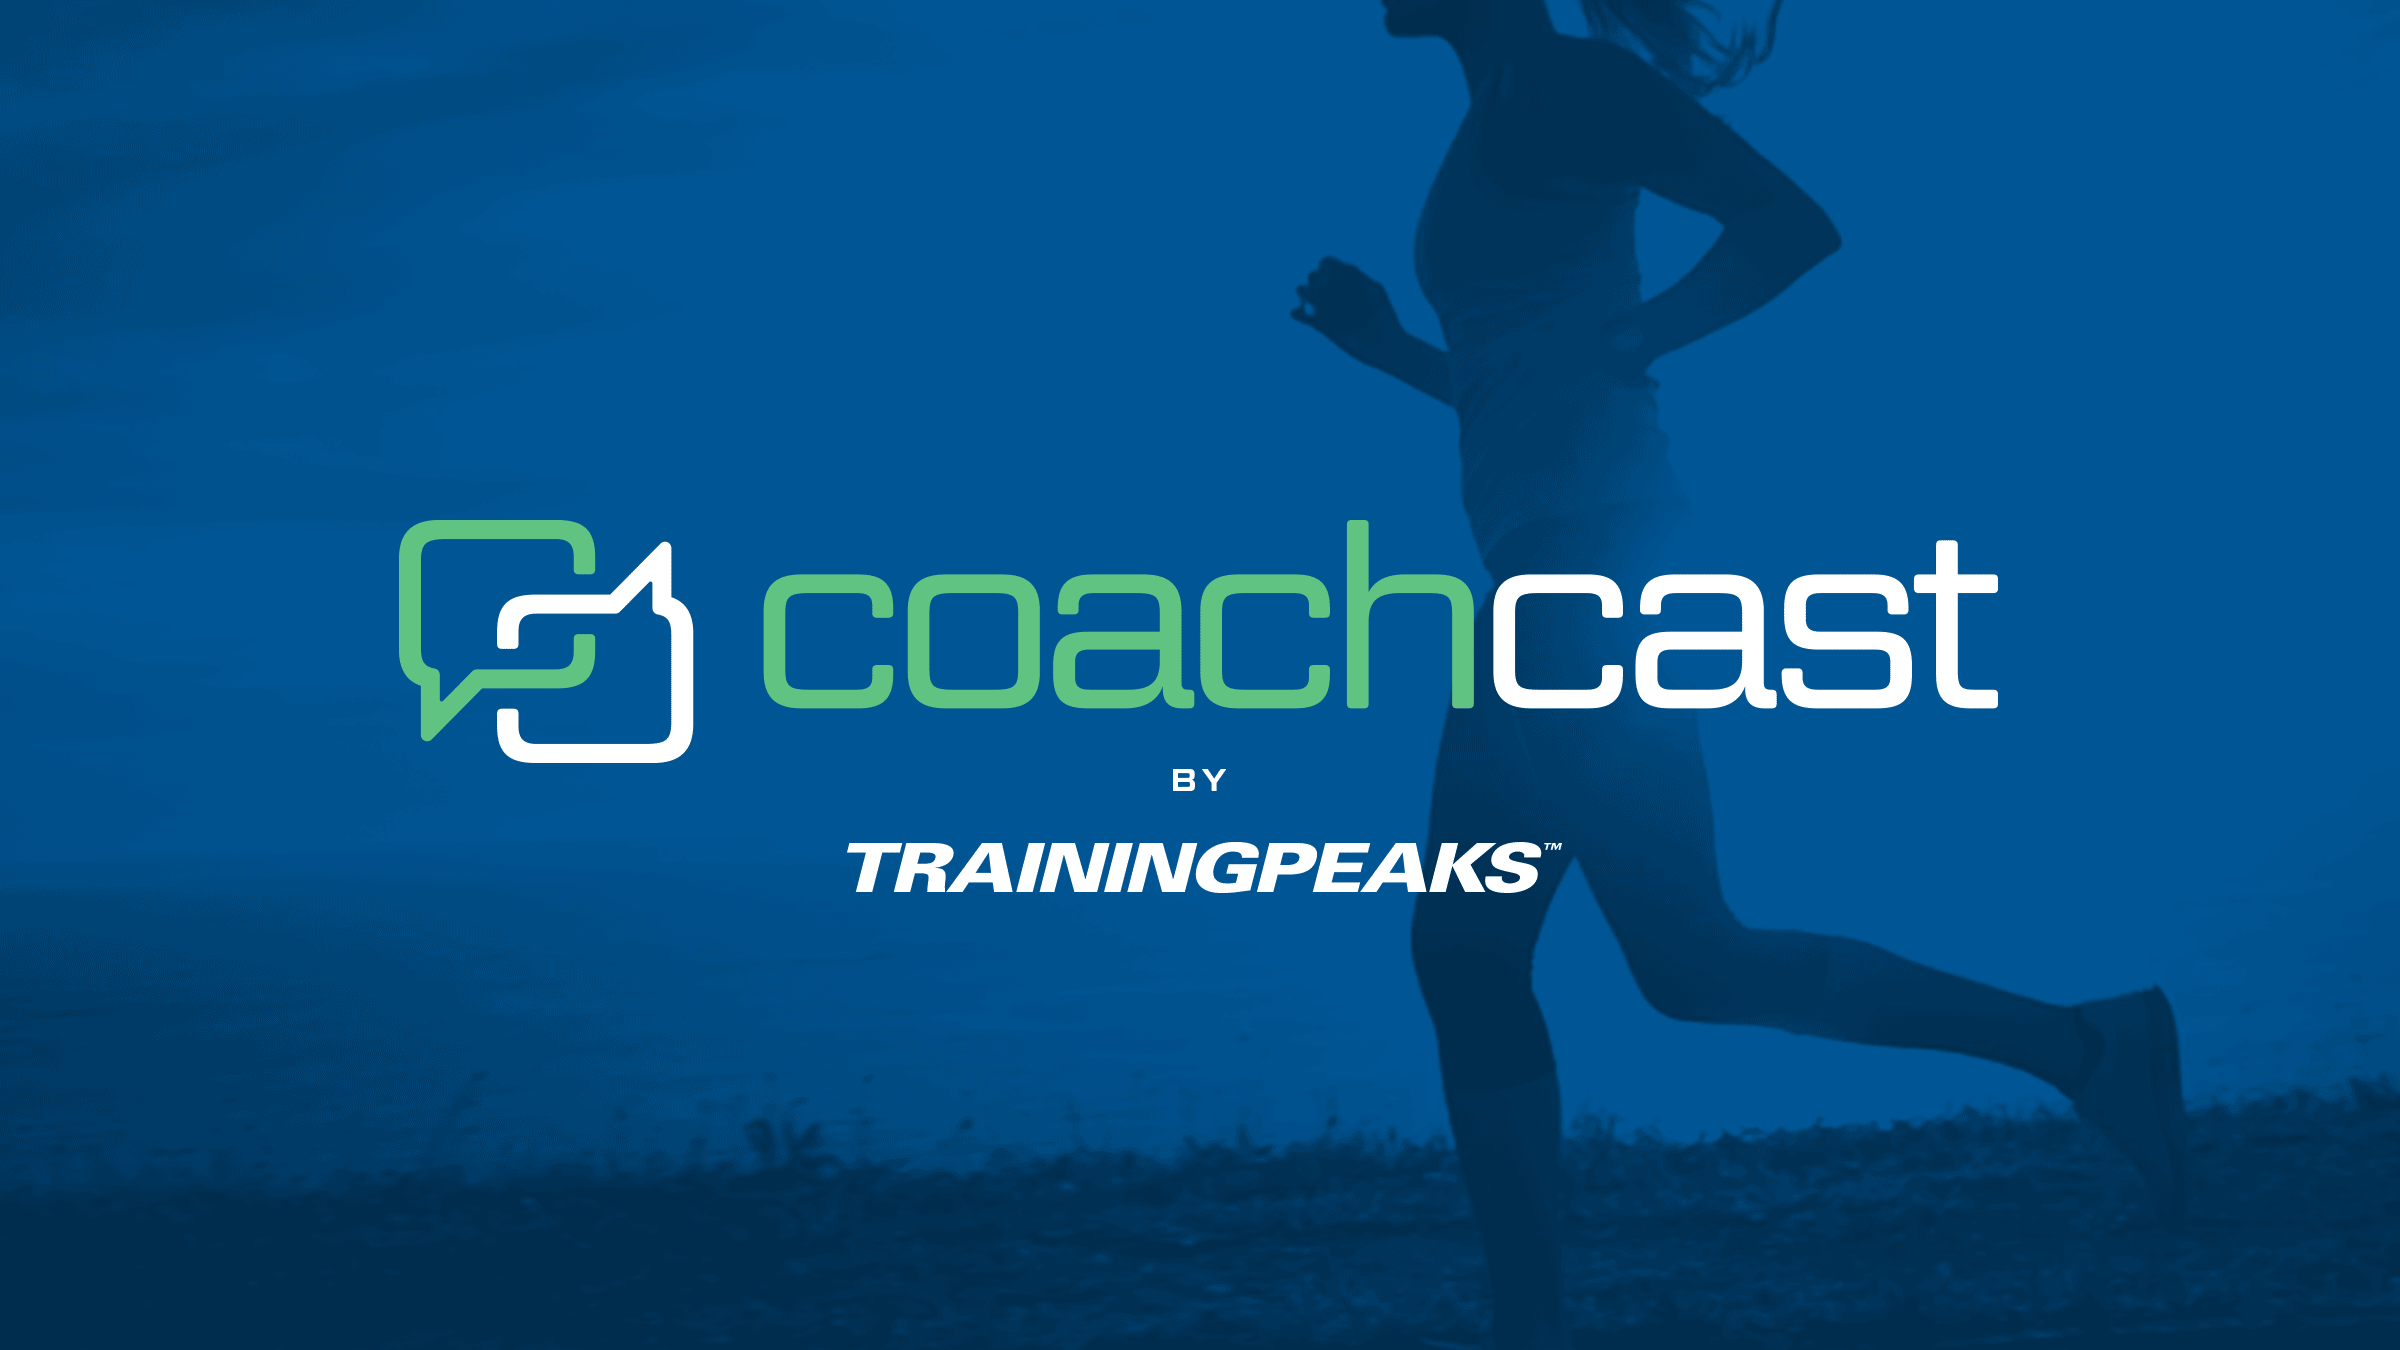 Announcing the TrainingPeaks CoachCast